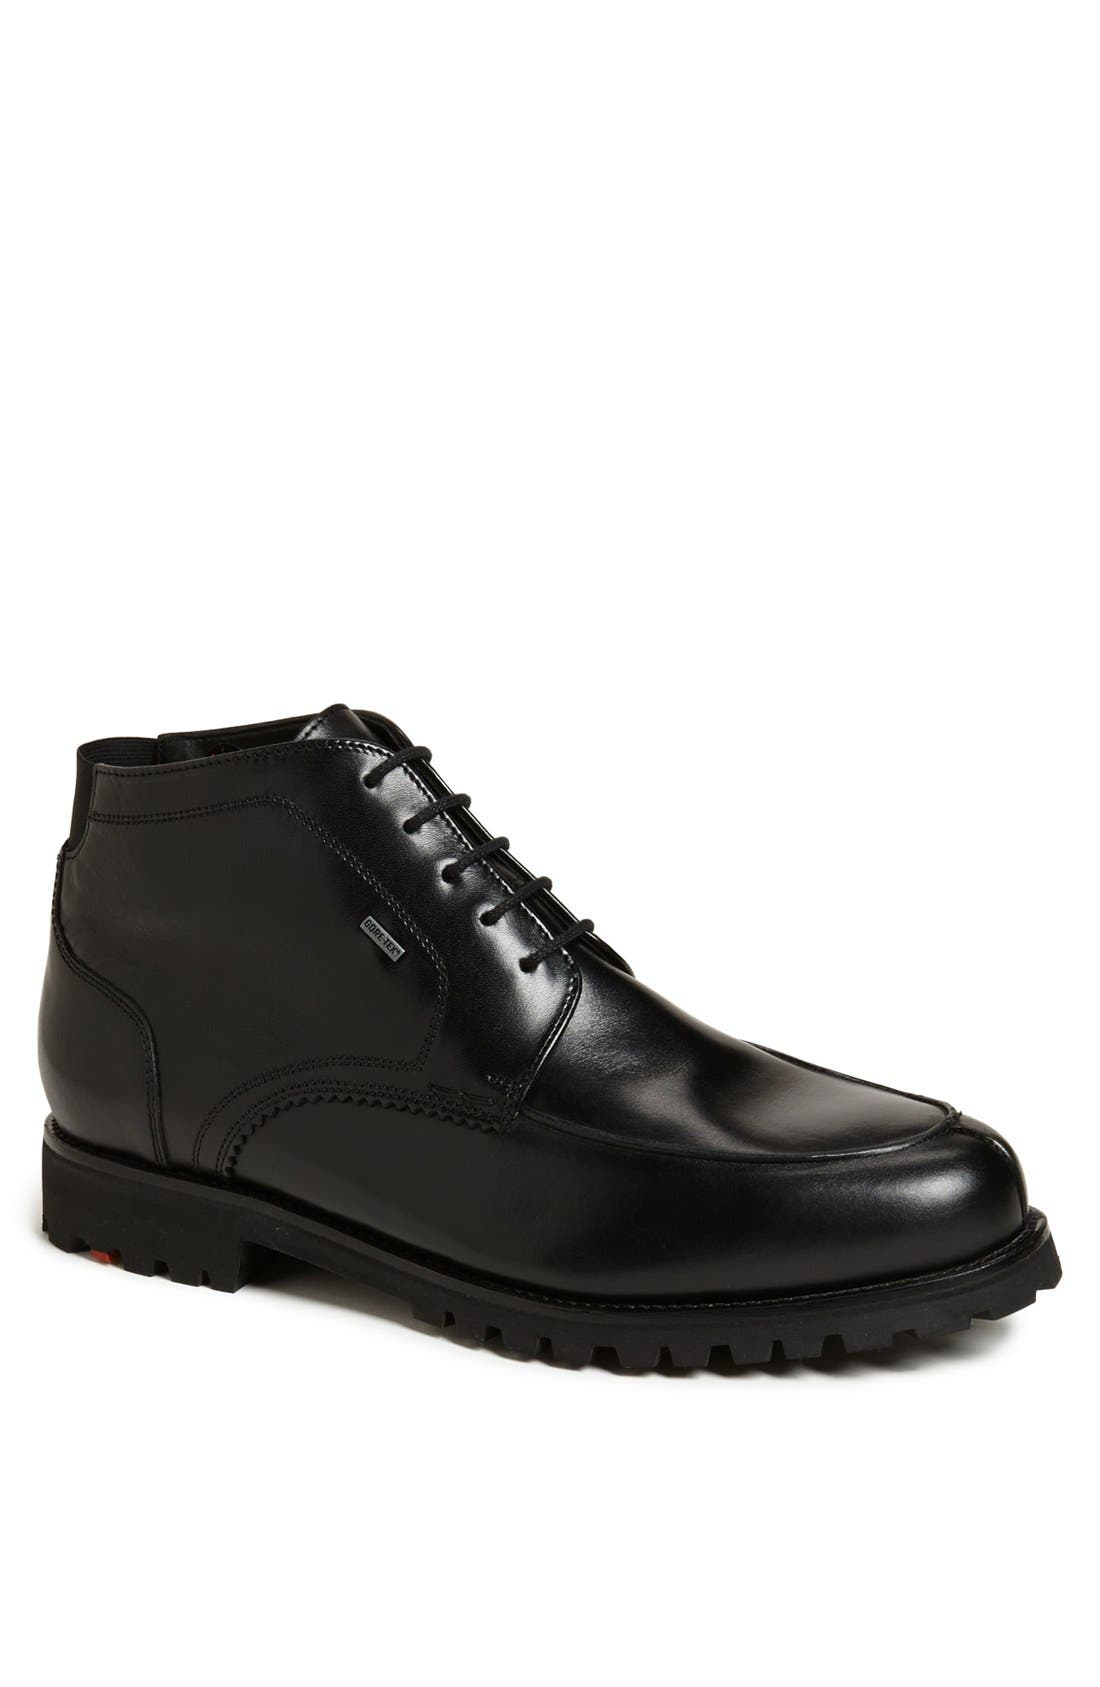 Lloyd 'Varello' Chukka Boot